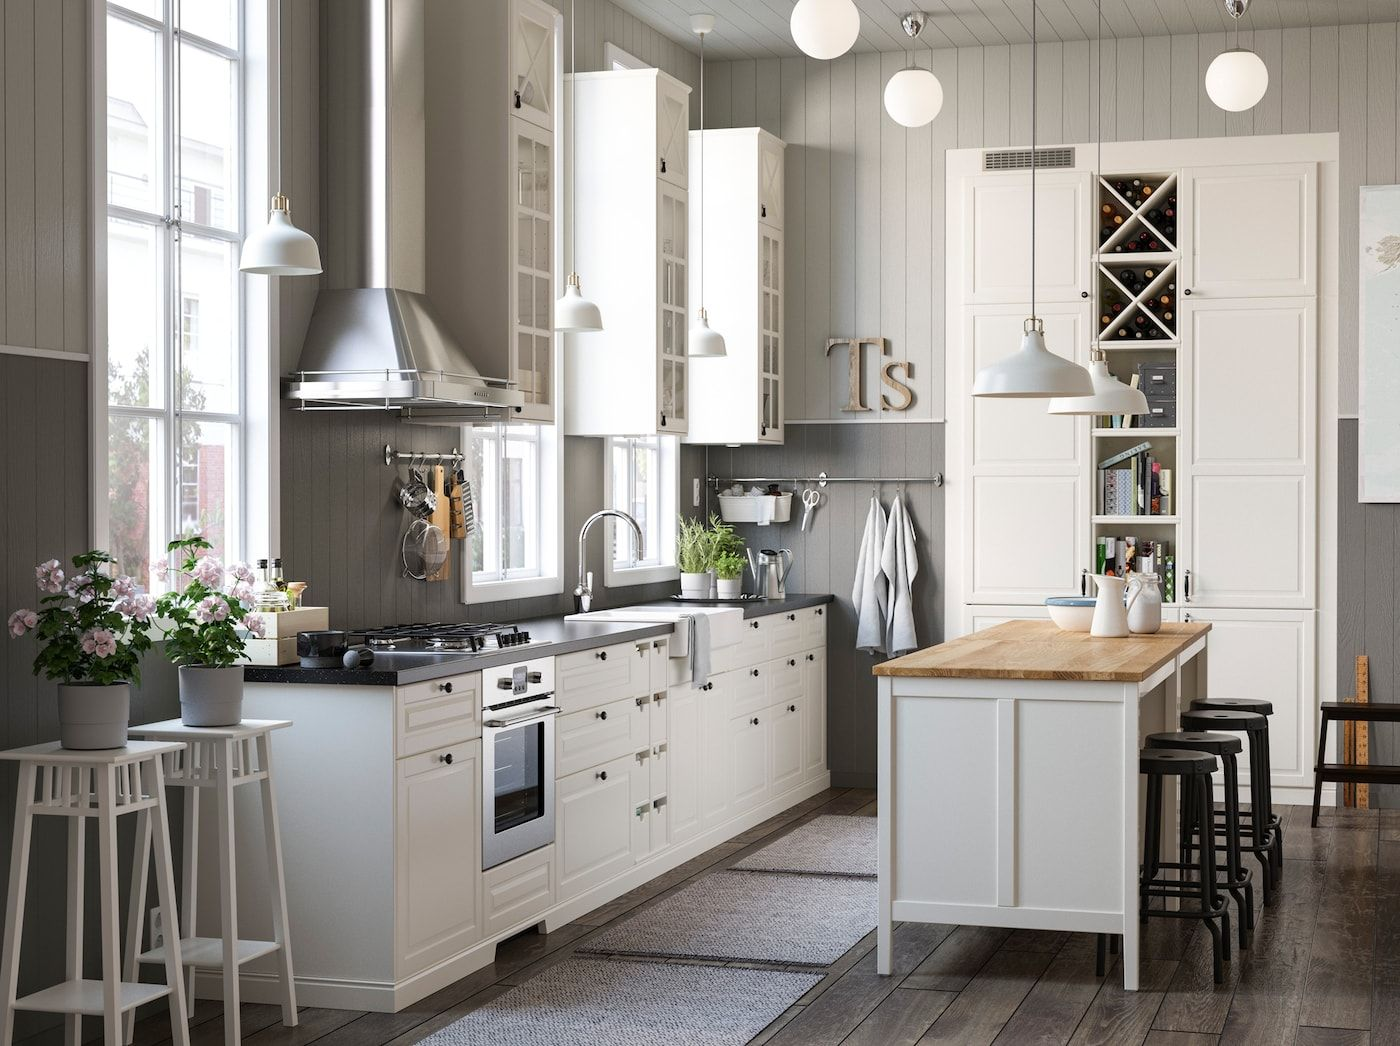 Countryside kitchen in the city Ikea kitchen inspiration